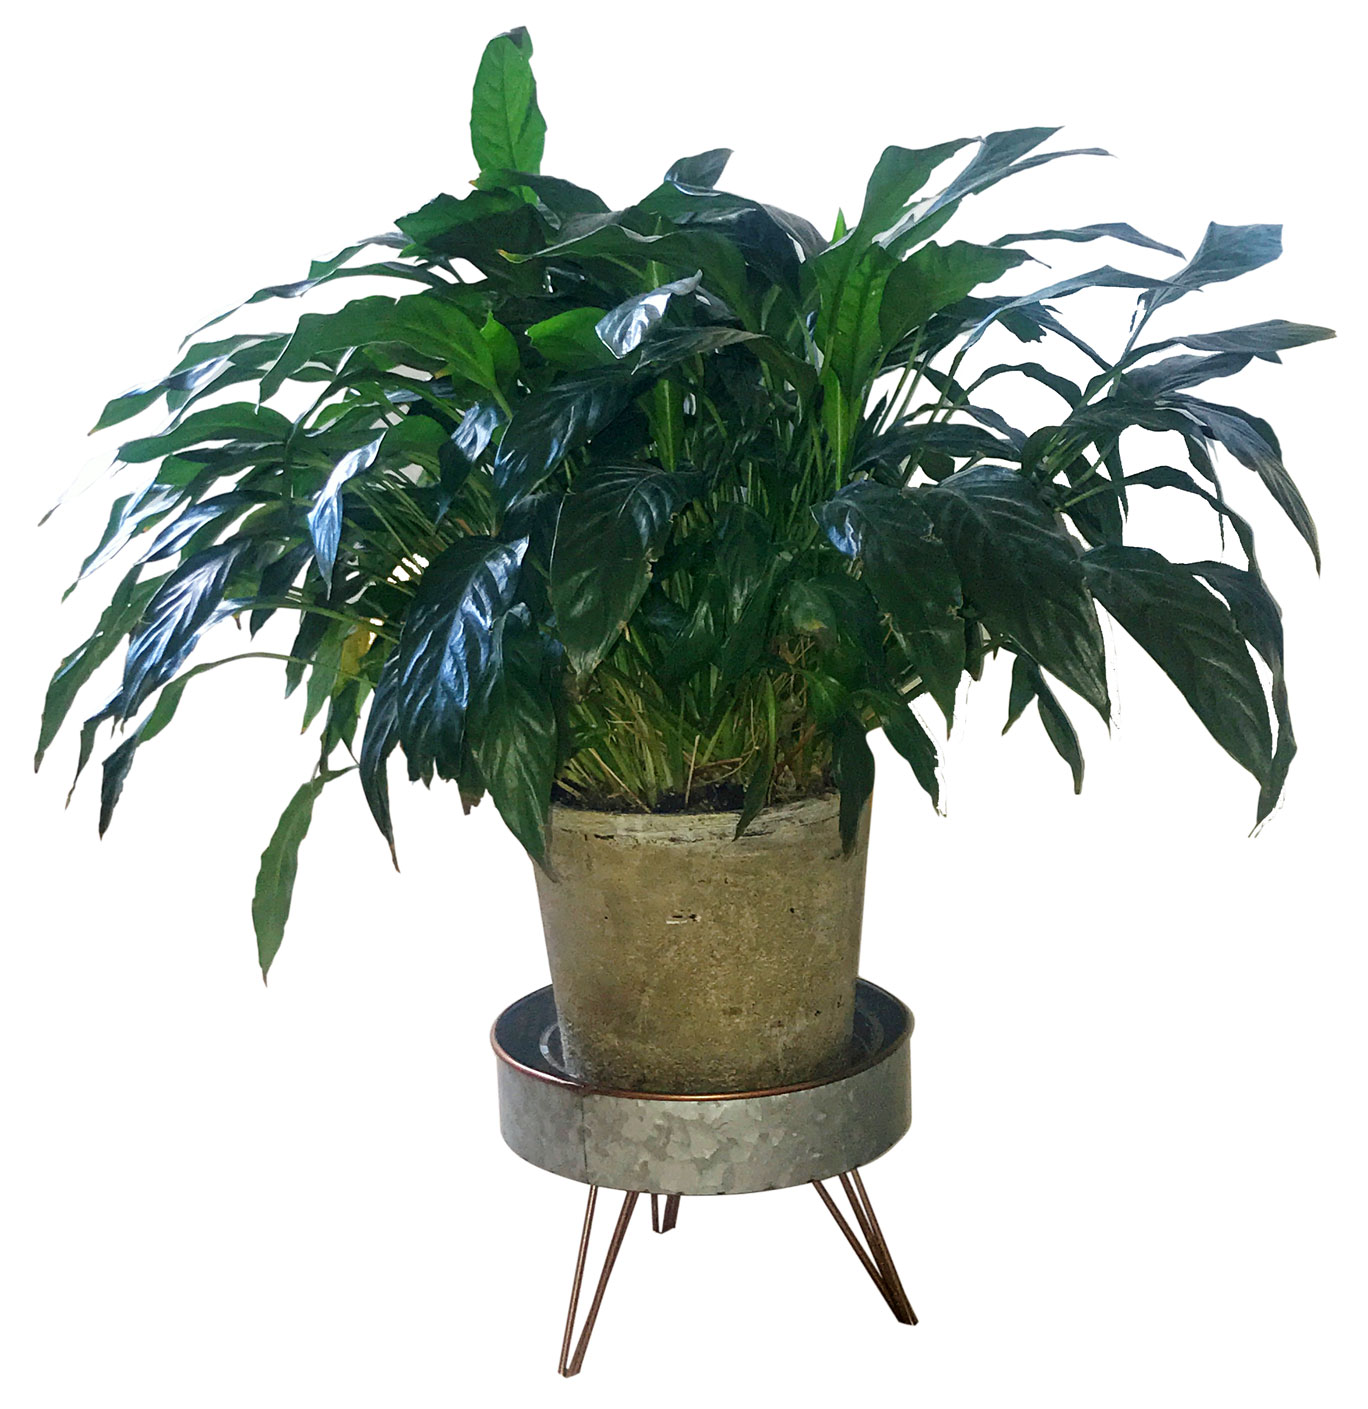 Happy houseplants: Spathiphyllum or Peace Lily